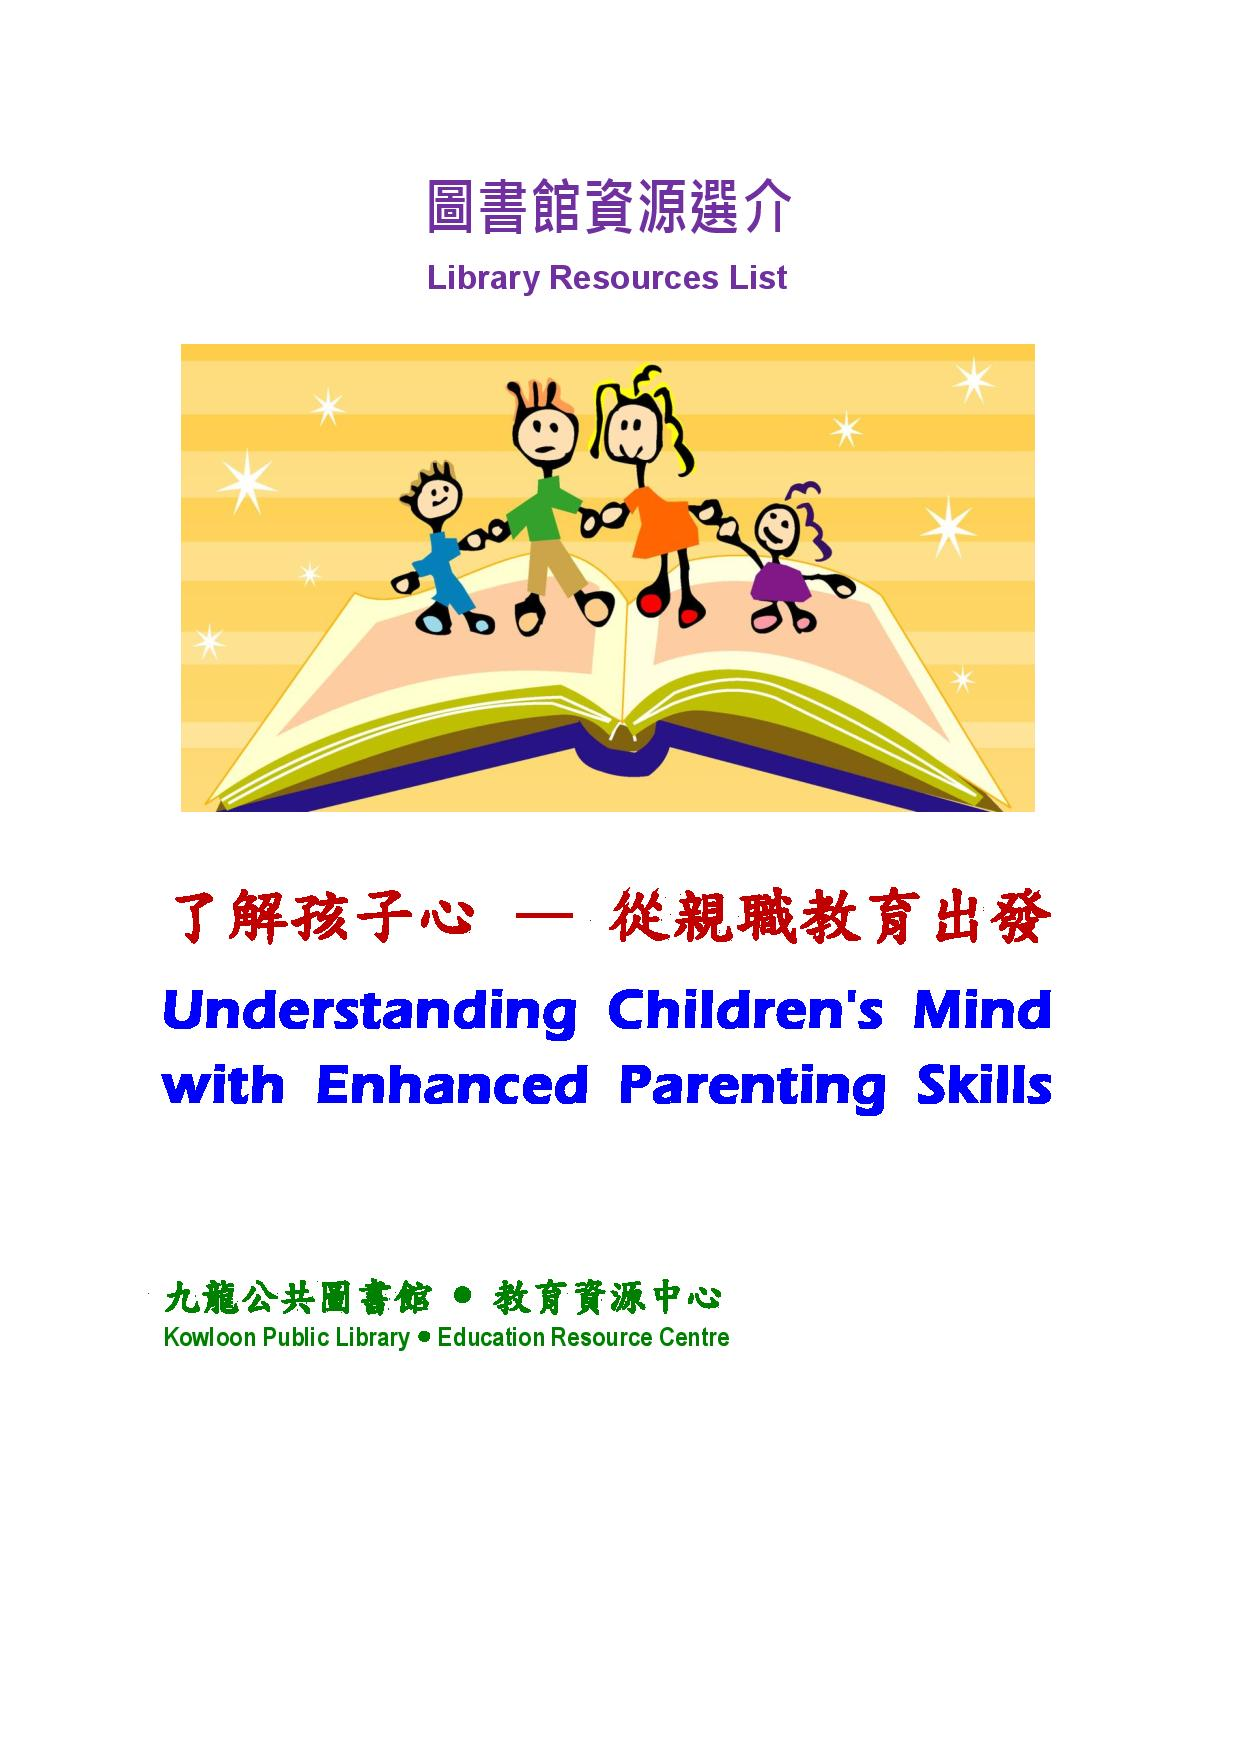 Understanding Children's Mind with Enhanced Parenting Skills